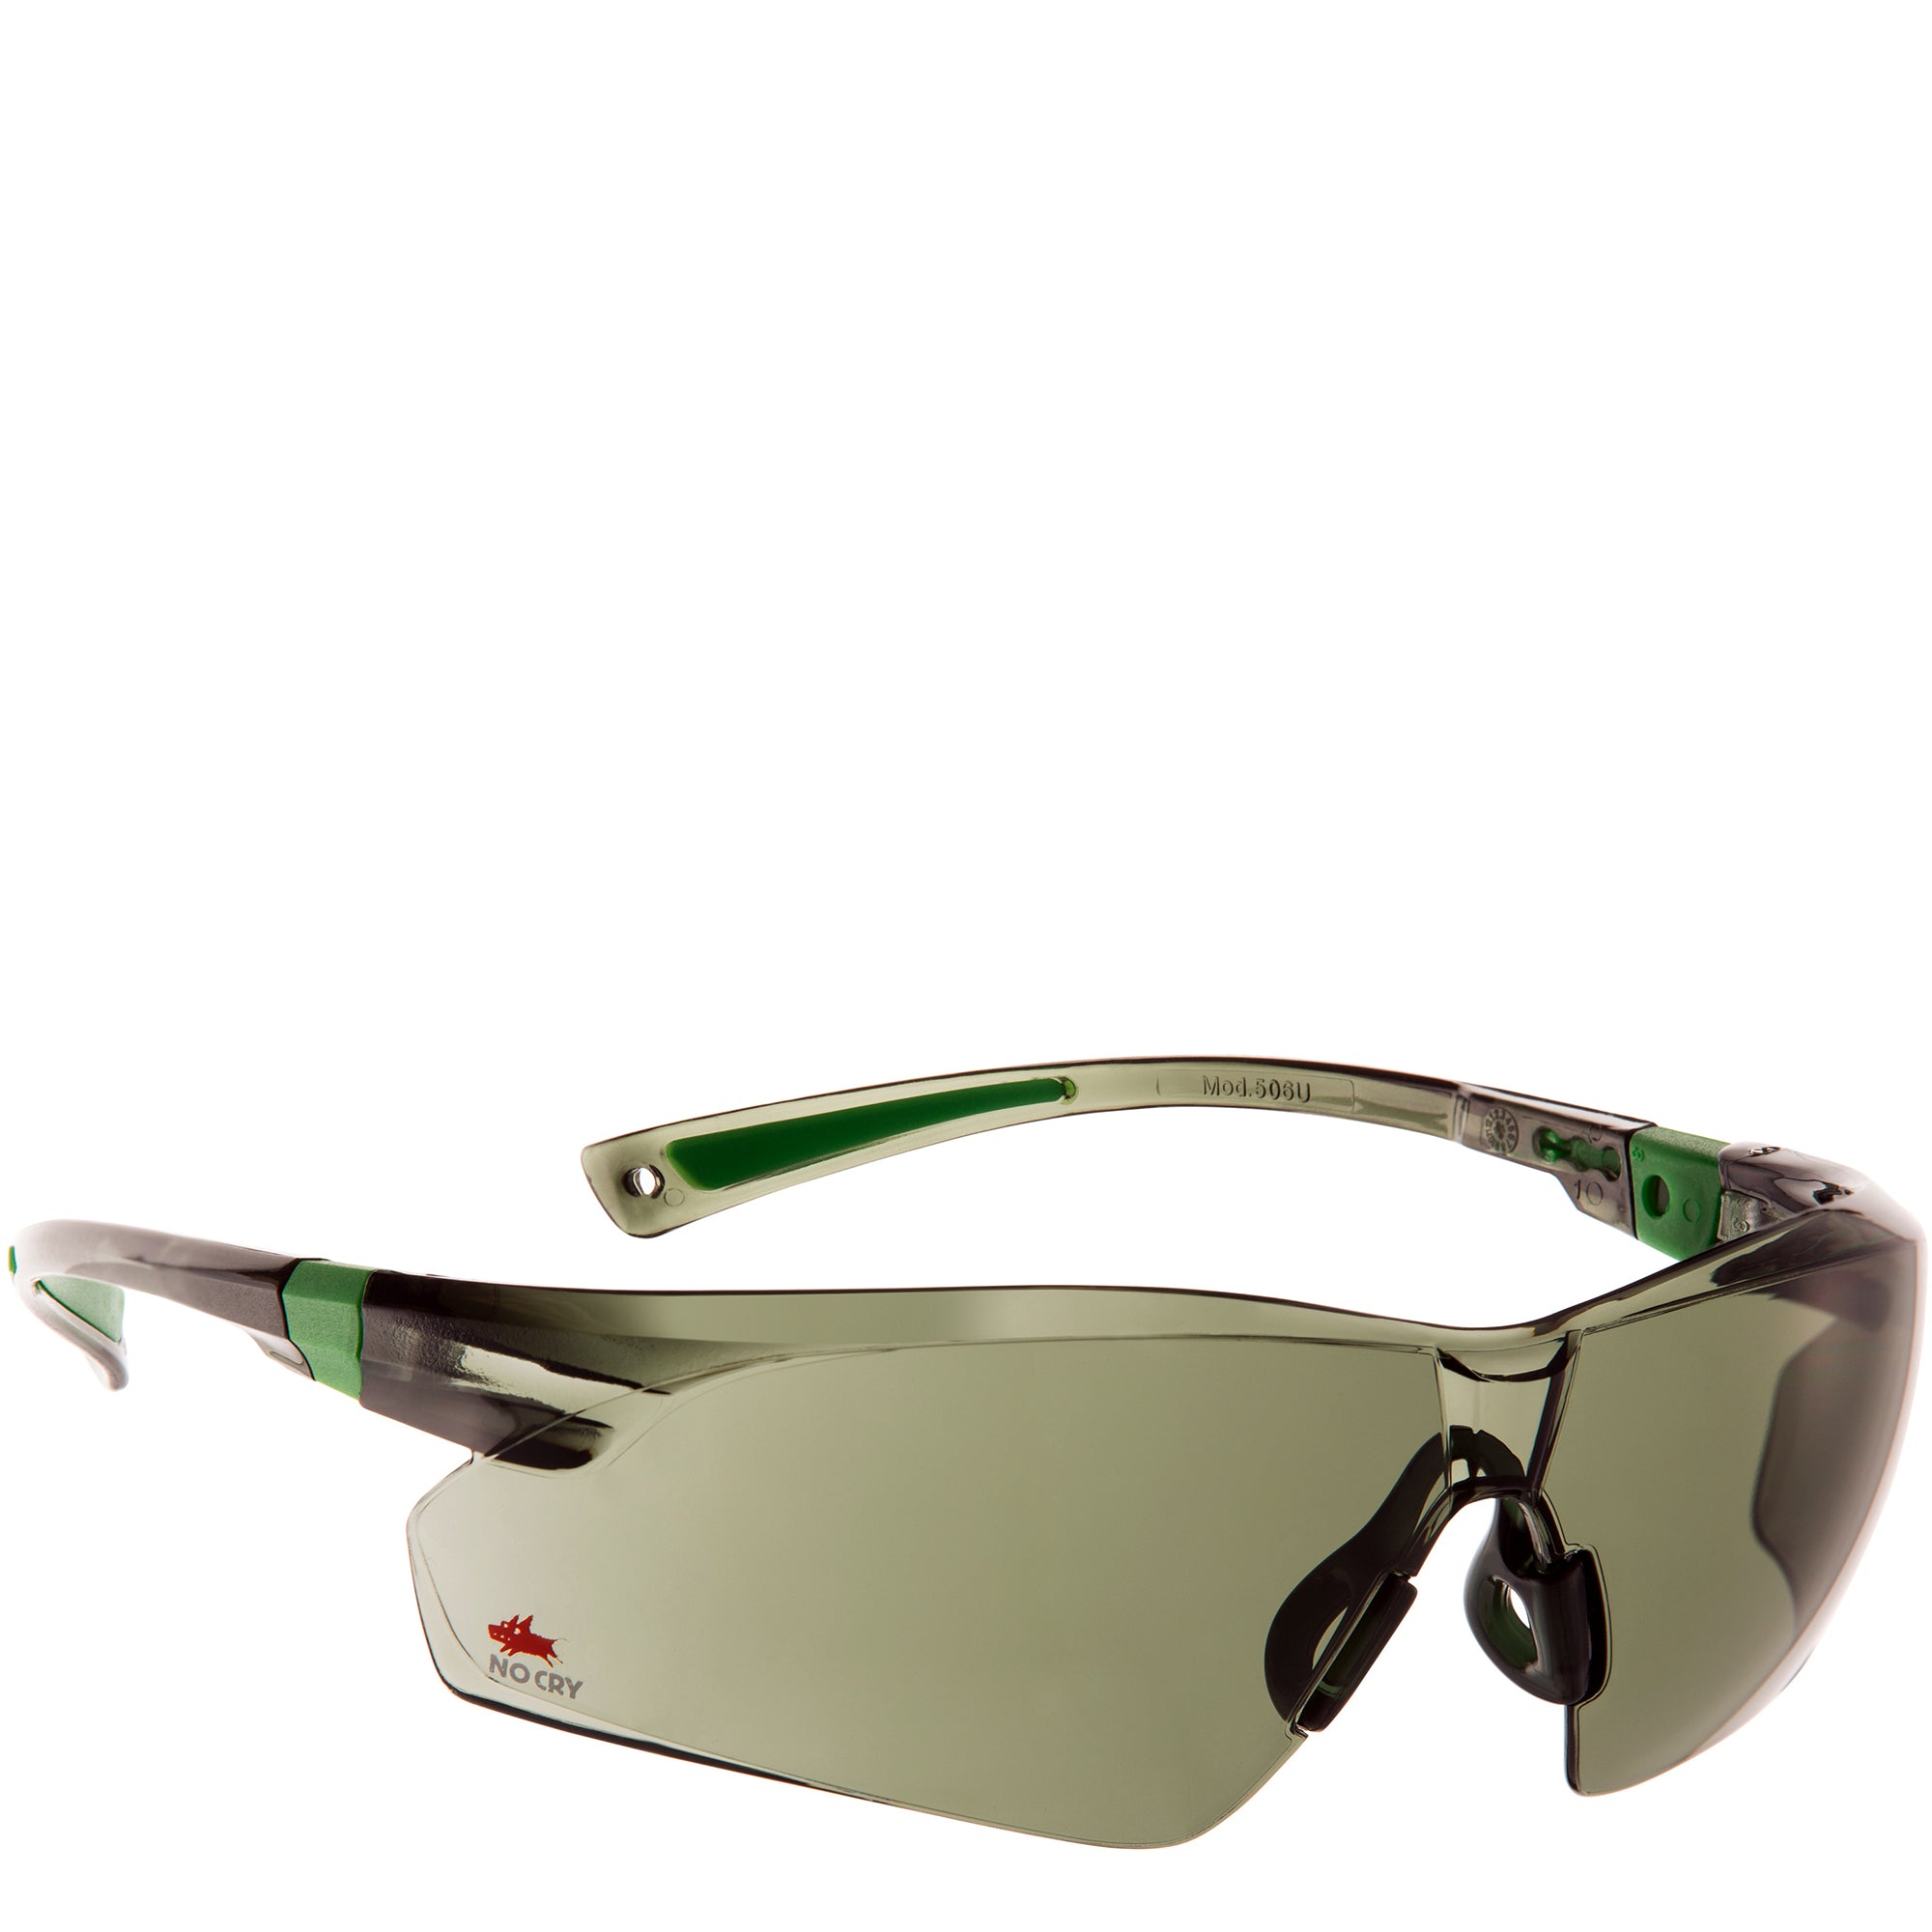 NoCry Tinted Safety Glasses